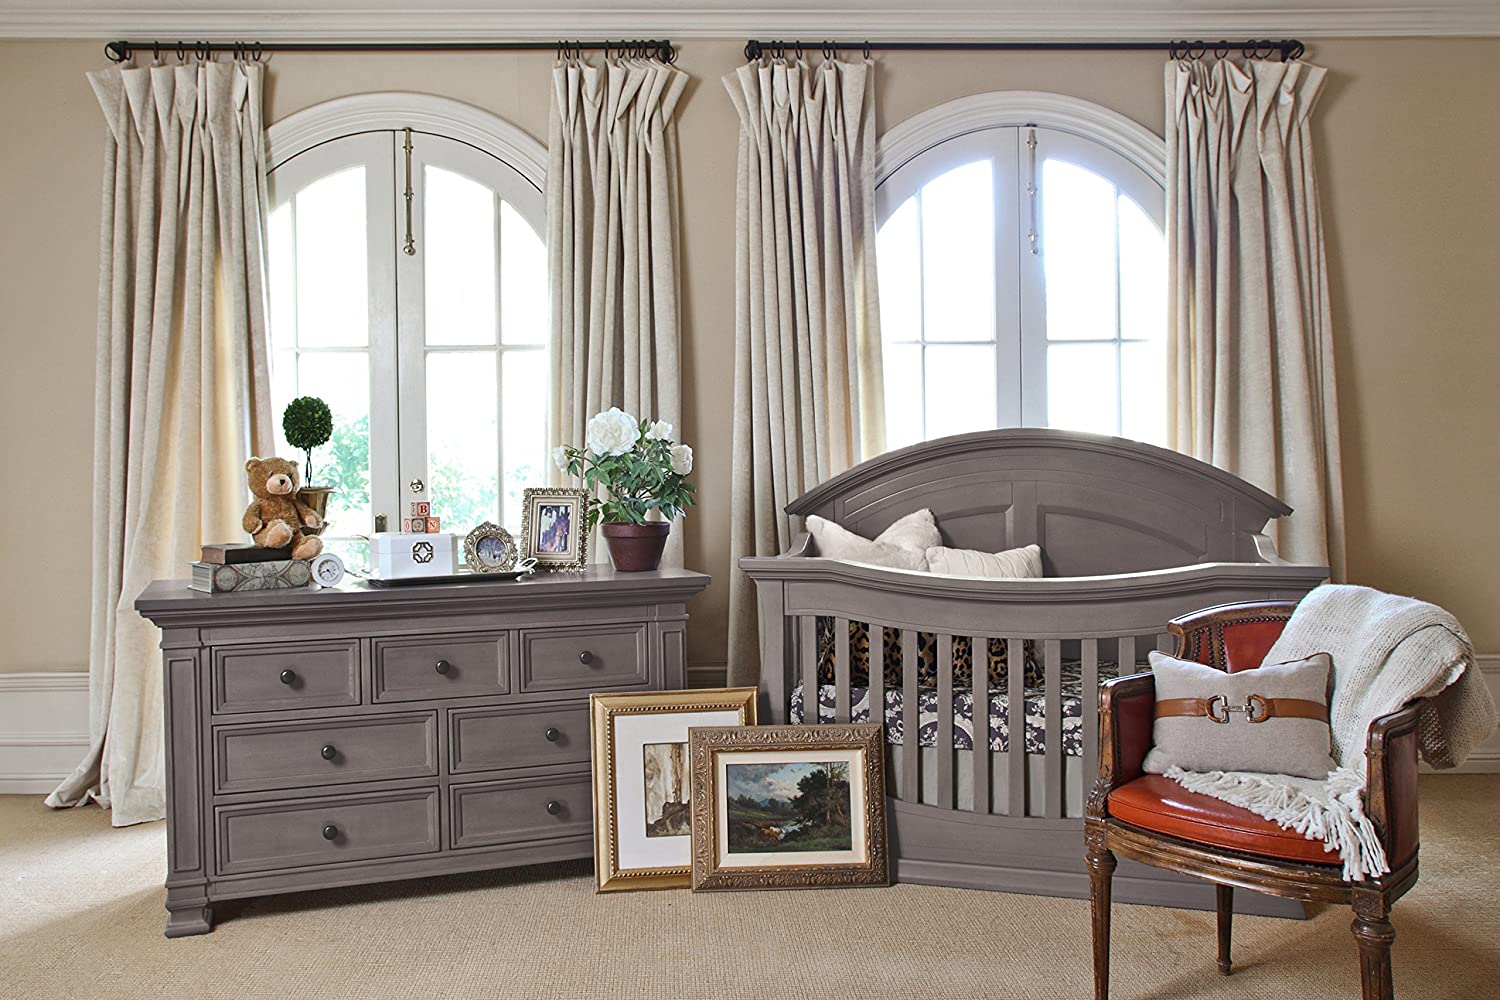 cribs walmart com convertible baby in dollar abigail iron million crib classic ip